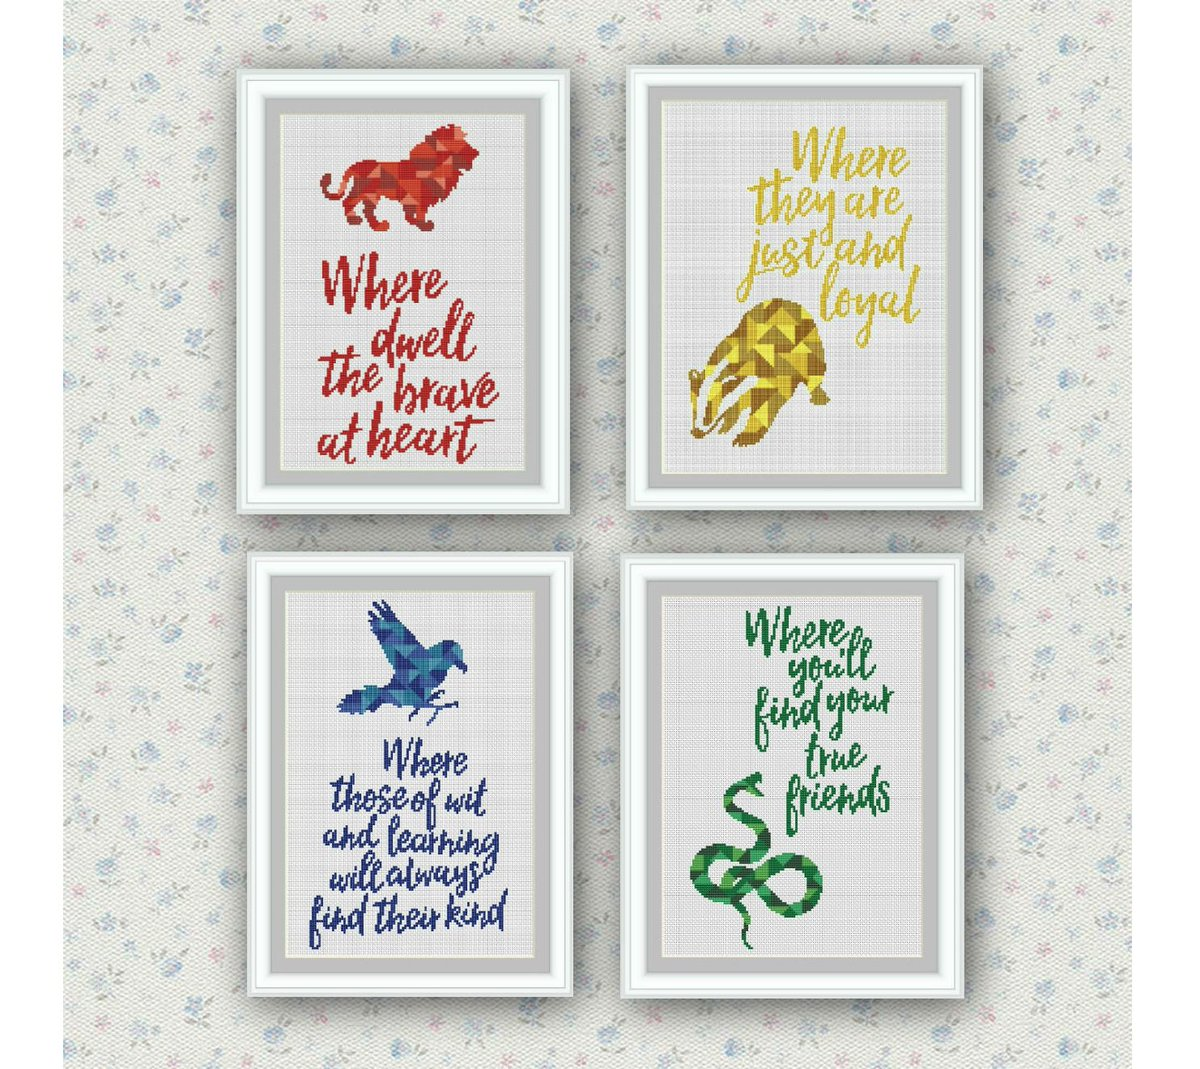 Elcrossstitch On Twitter Set Of 4 Quoteshogwarts Houses Cross